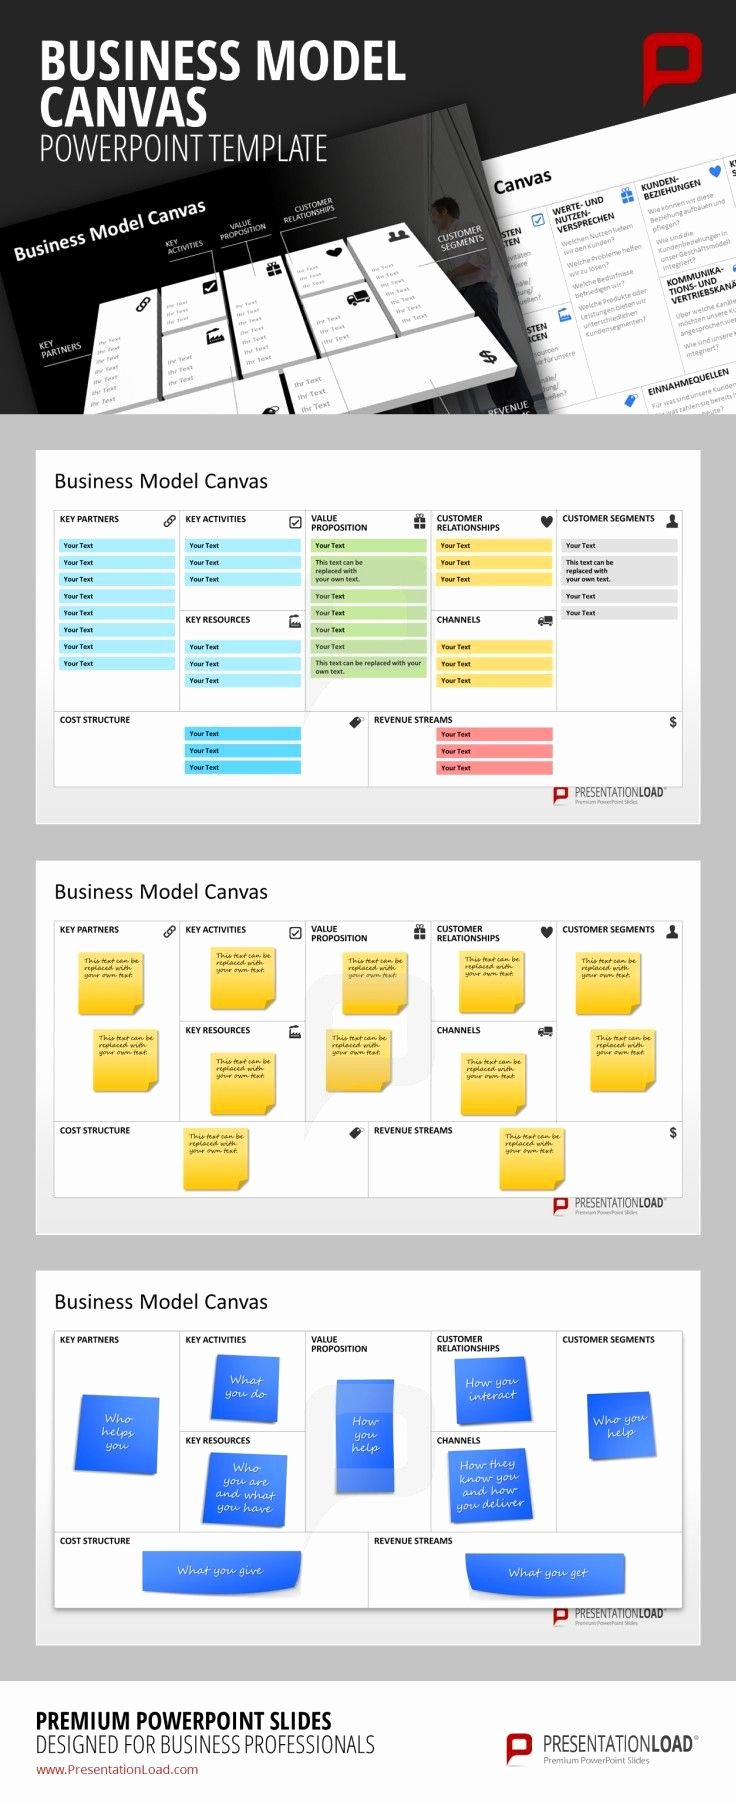 Business Canvas Template Ppt Inspirational 17 Best Ideas About Business Model Template On Pinterest